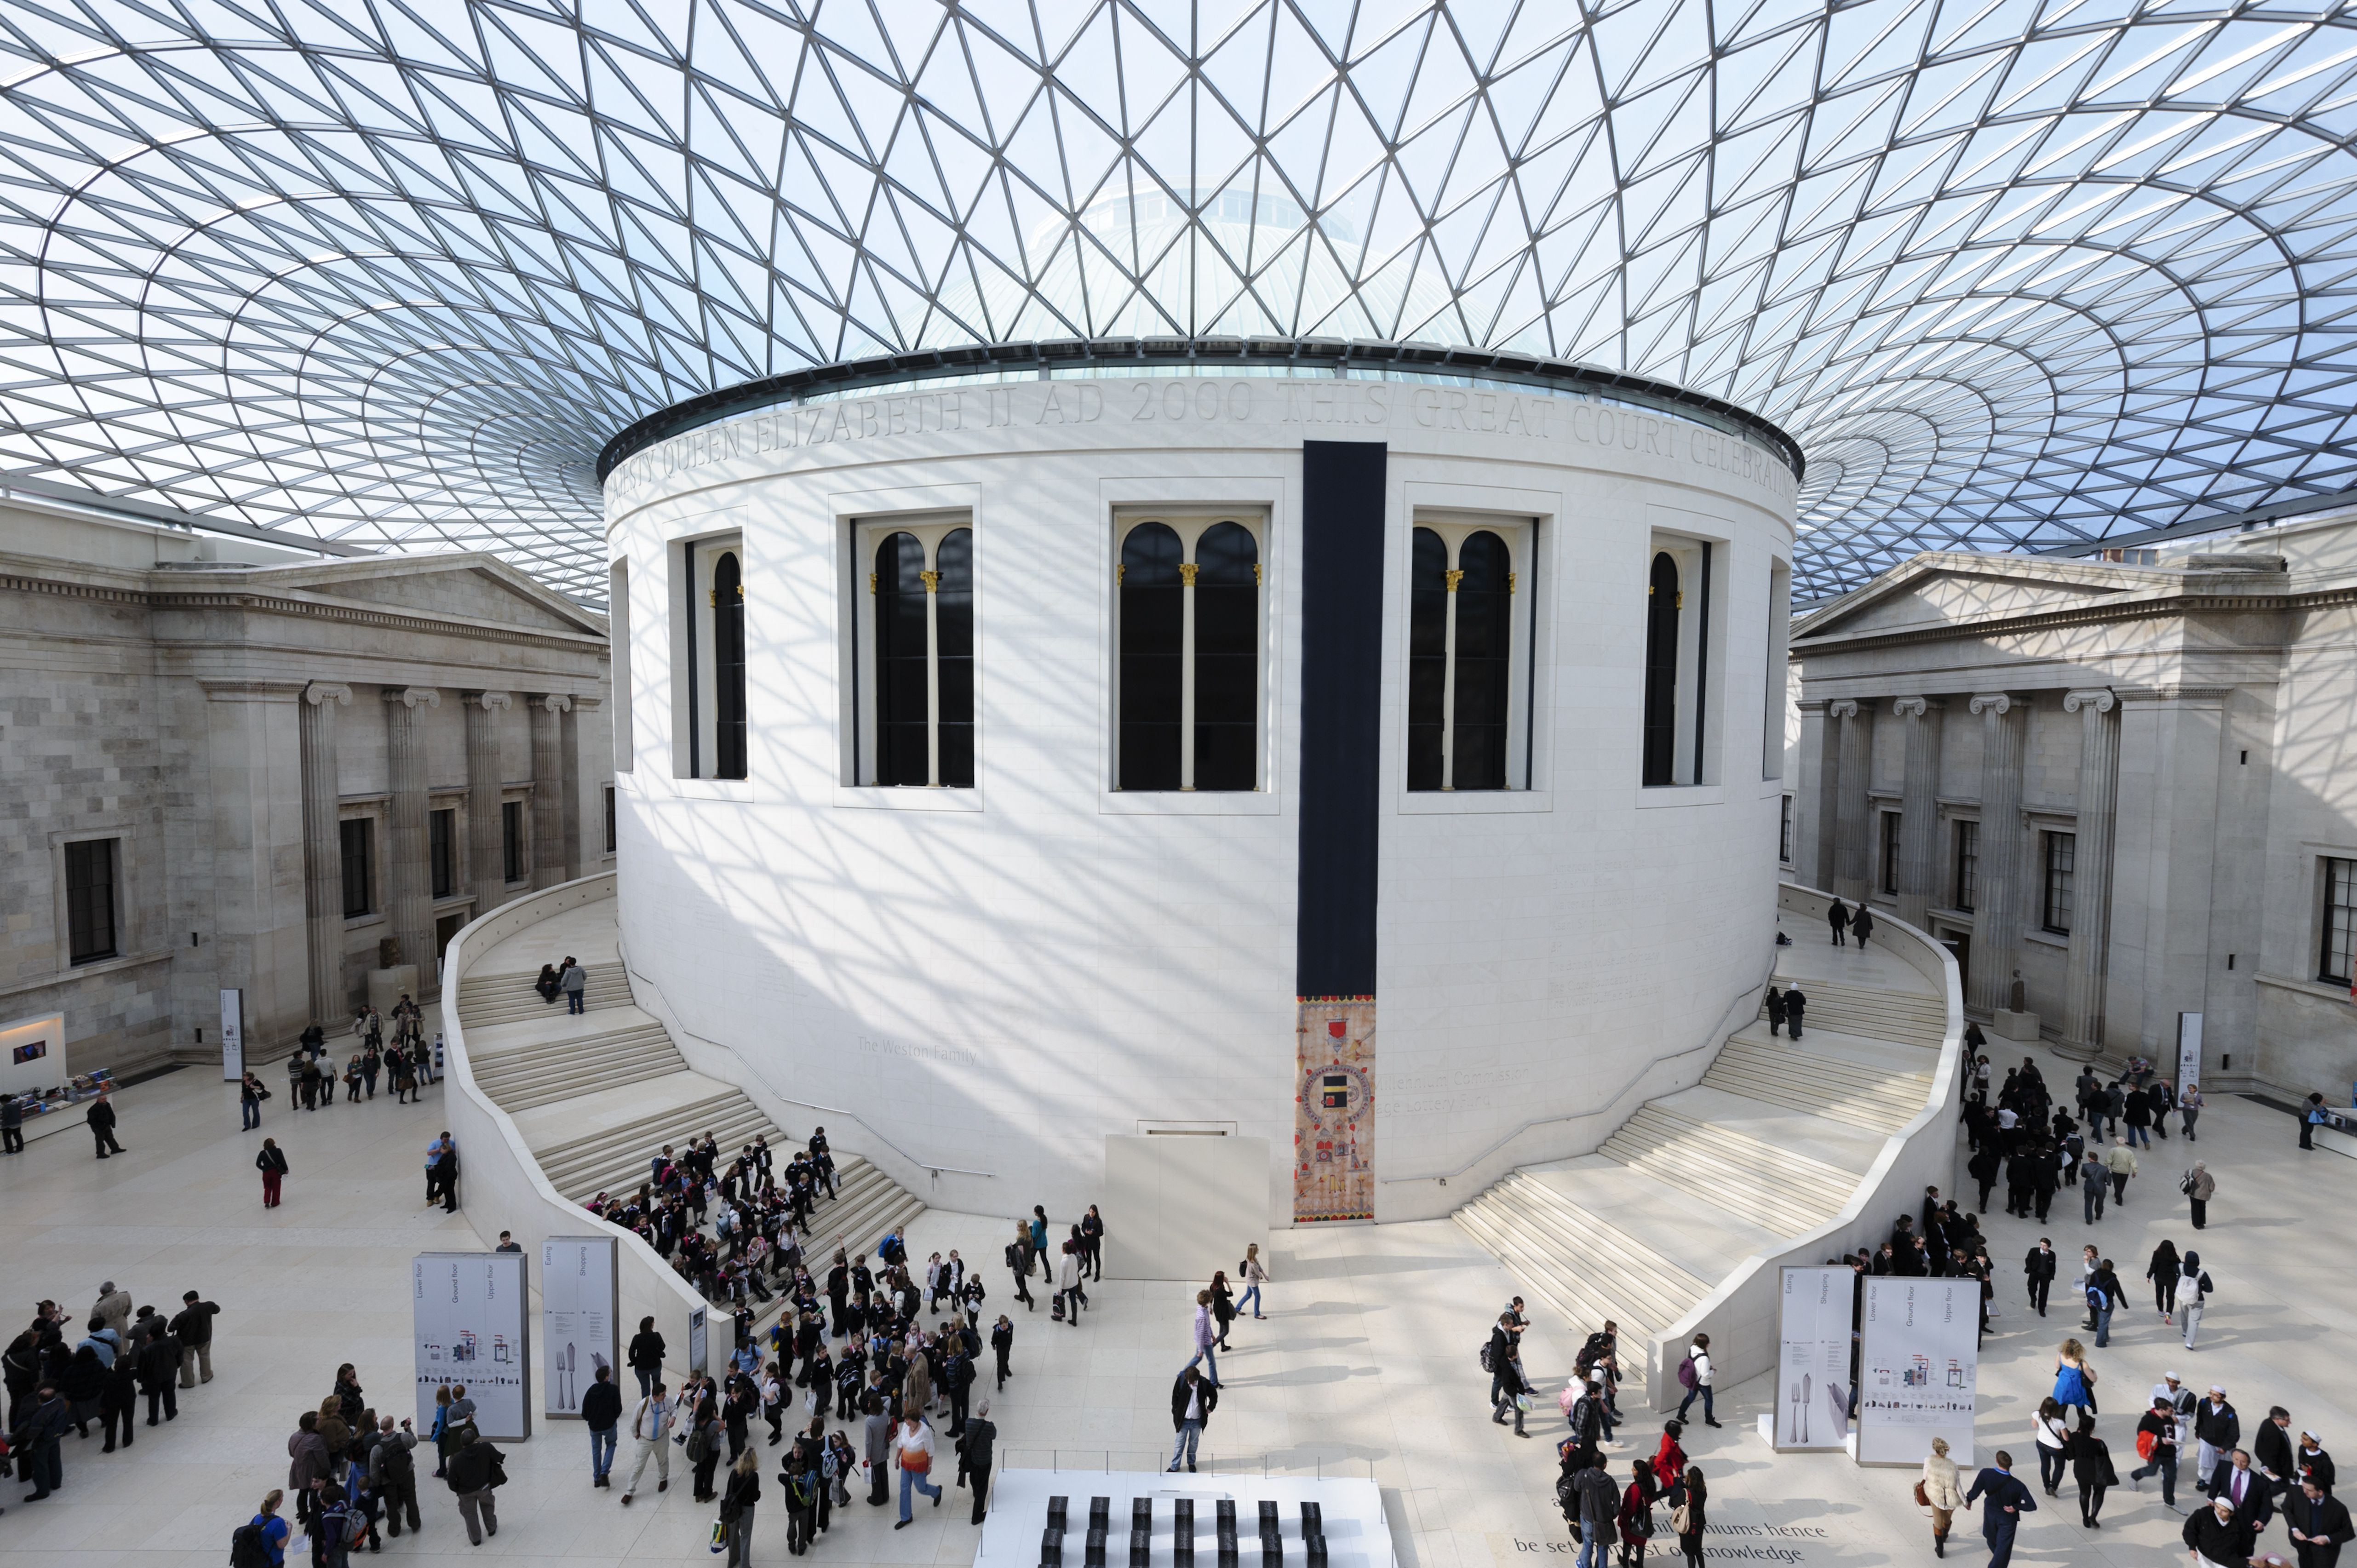 large interior space with light-filled triangular glass roof